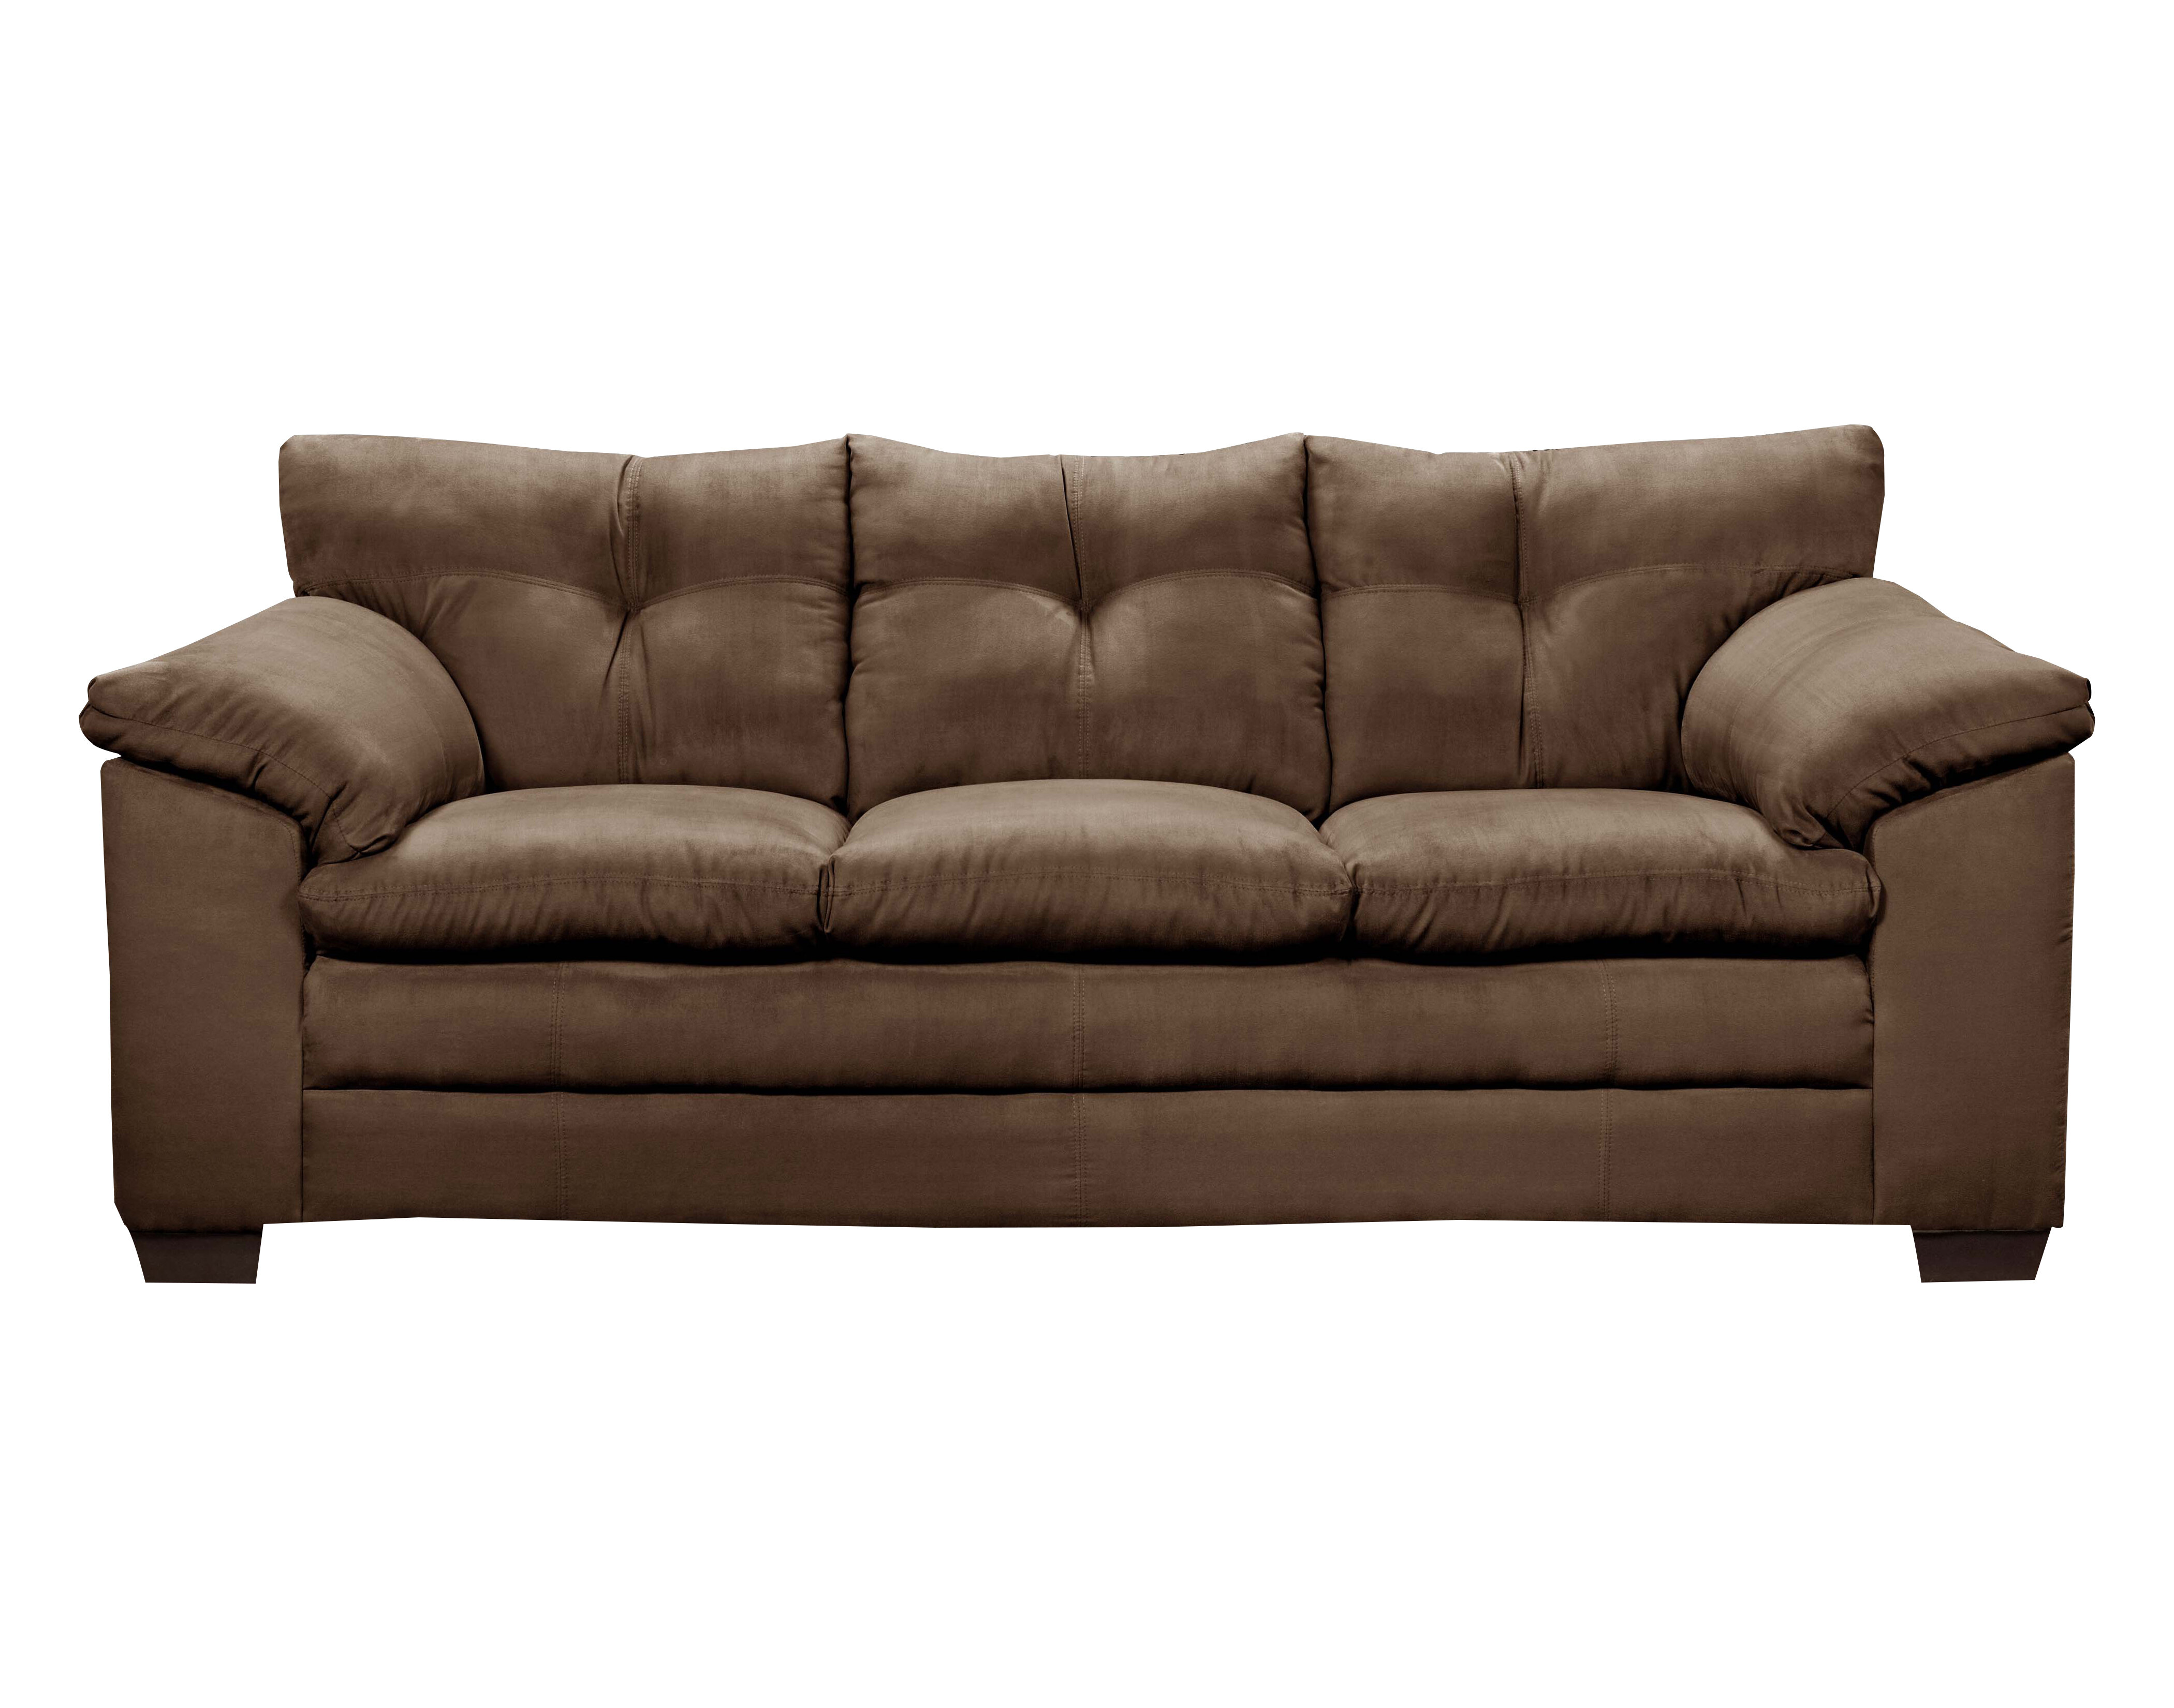 Charmant Three Posts Simmons Upholstery Richland Sofa U0026 Reviews | Wayfair